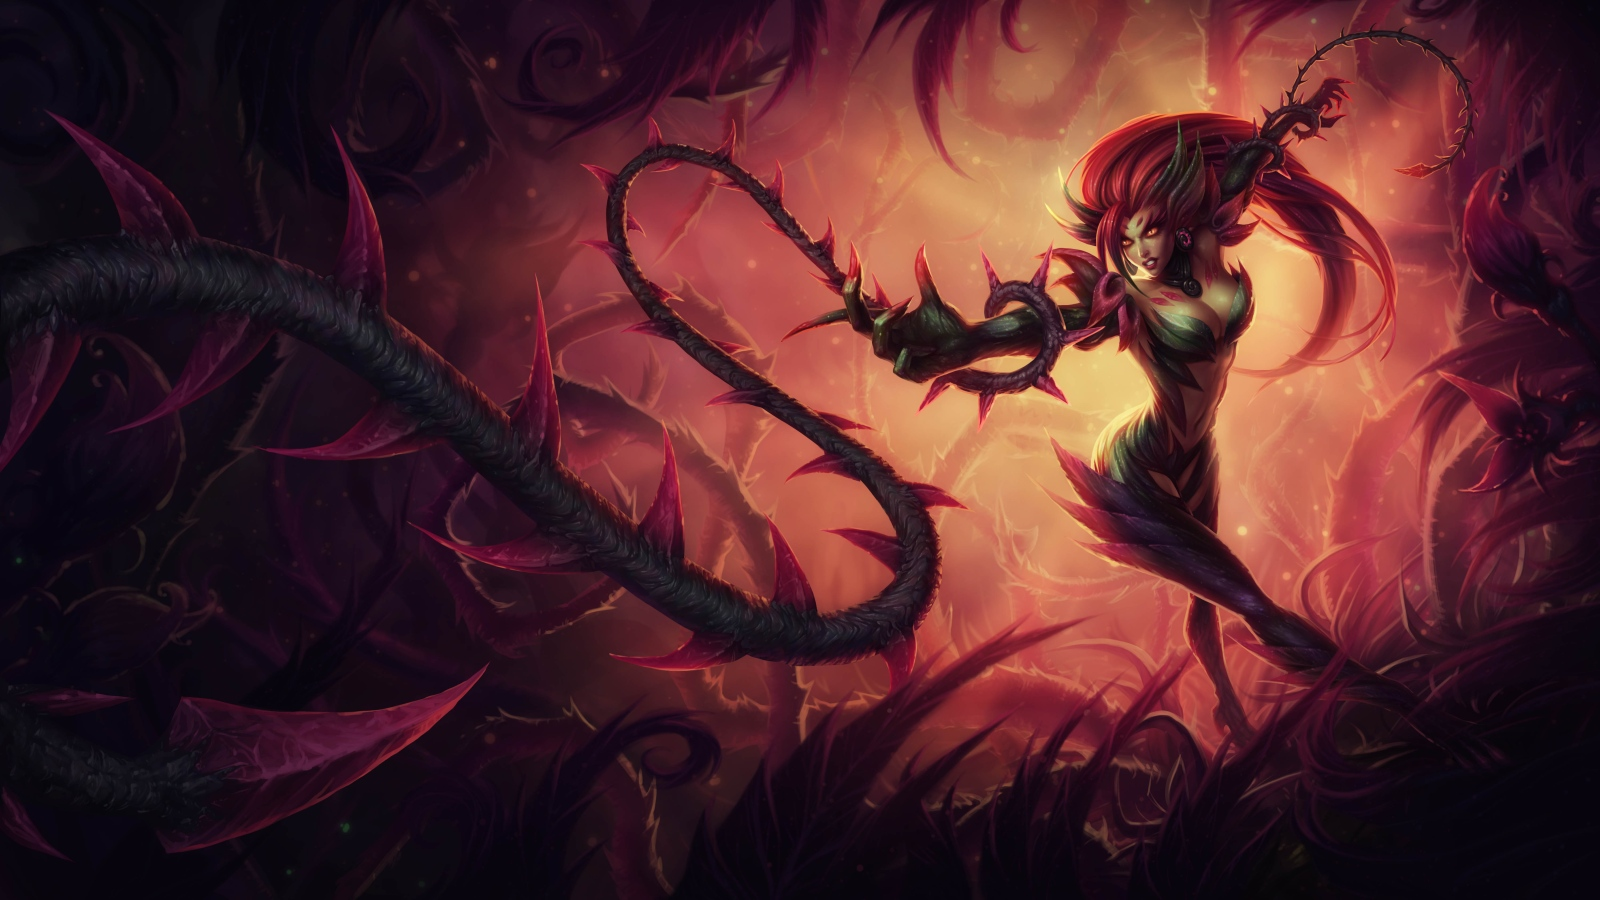 http://1.bp.blogspot.com/-KwY4D3Mkt-g/UABsqZ7VrCI/AAAAAAAABR0/Fzvzw6C3kRA/s1600/League+of+Legends+Zyra%2C+Rise+of+the+Thorns%2C+Plant+Mage+Wallpaper.jpg